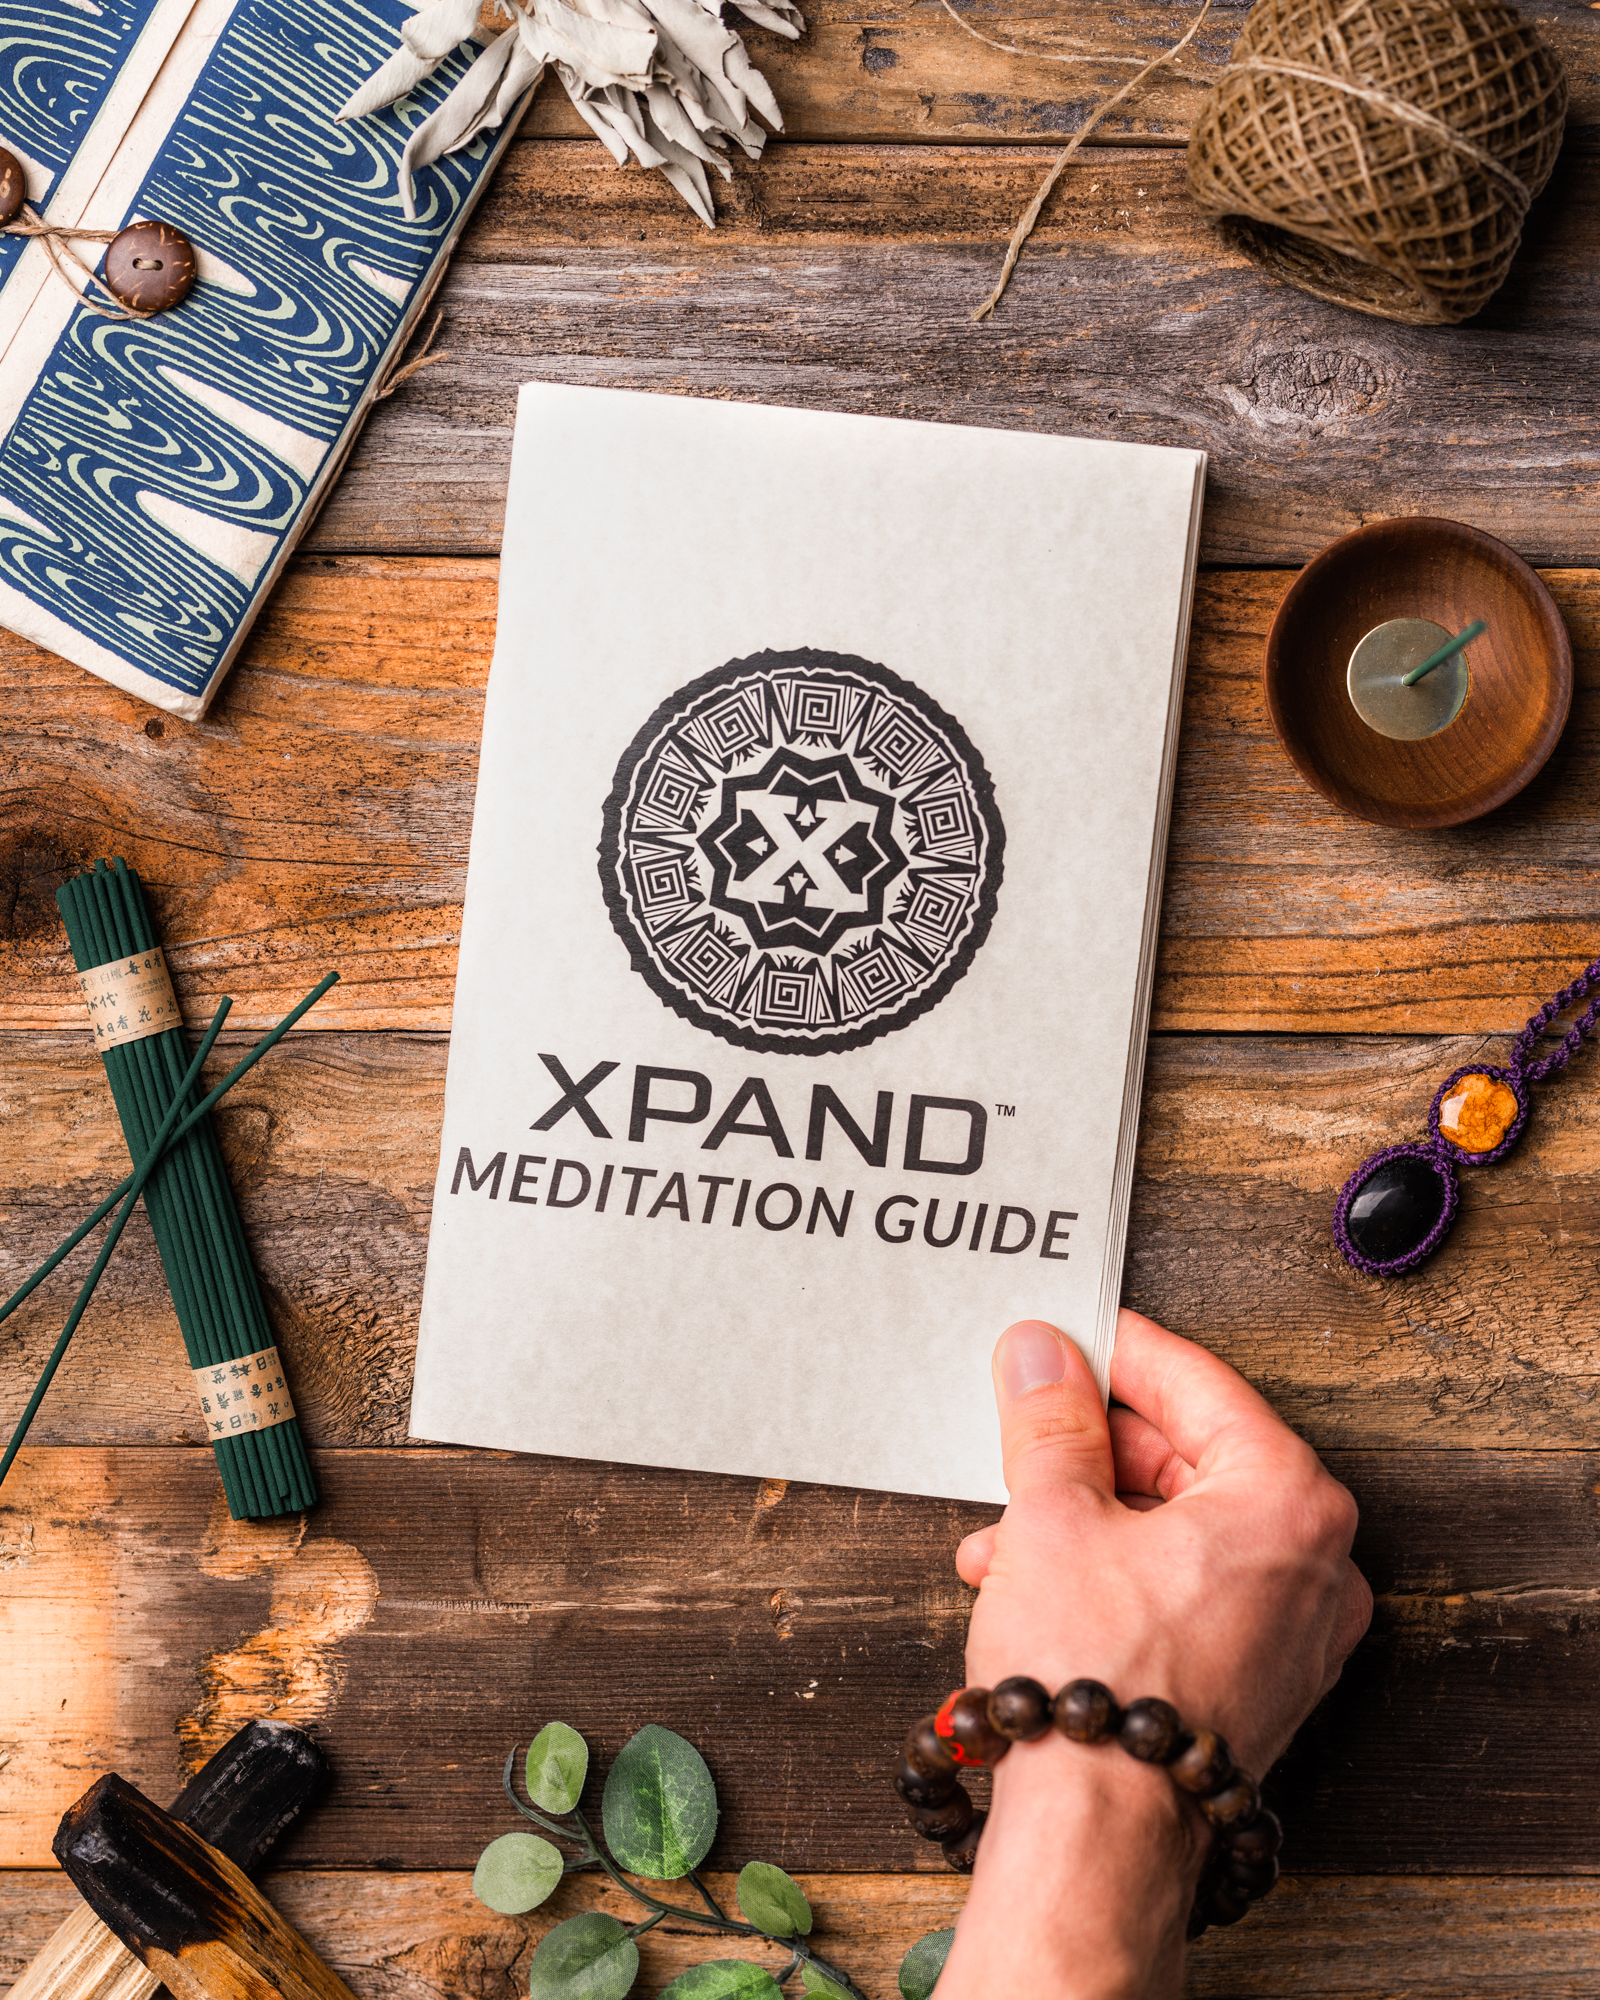 Also included! - The XPAND Meditation Guide instructional booklet is a powerful resource containing full descriptions of the contents, item-specific meditations, as well as bonus meditations.